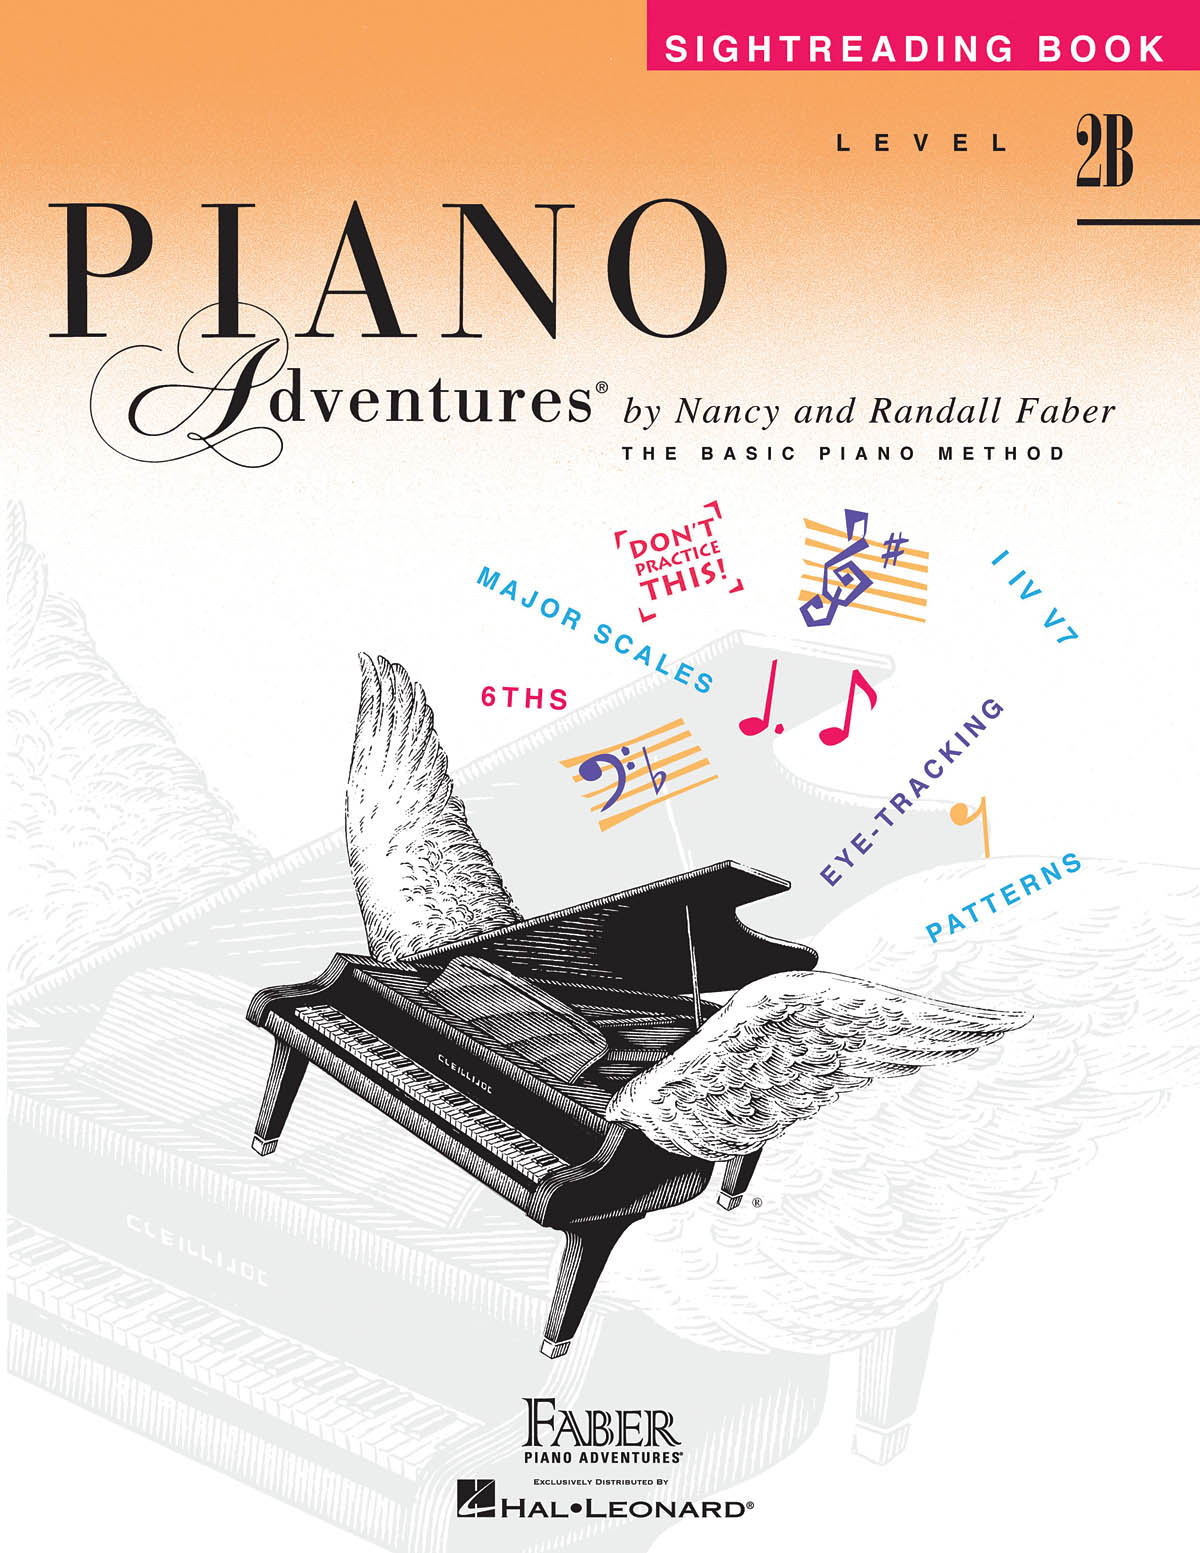 Faber Piano Adventures, Sightreading Book, Level 2B